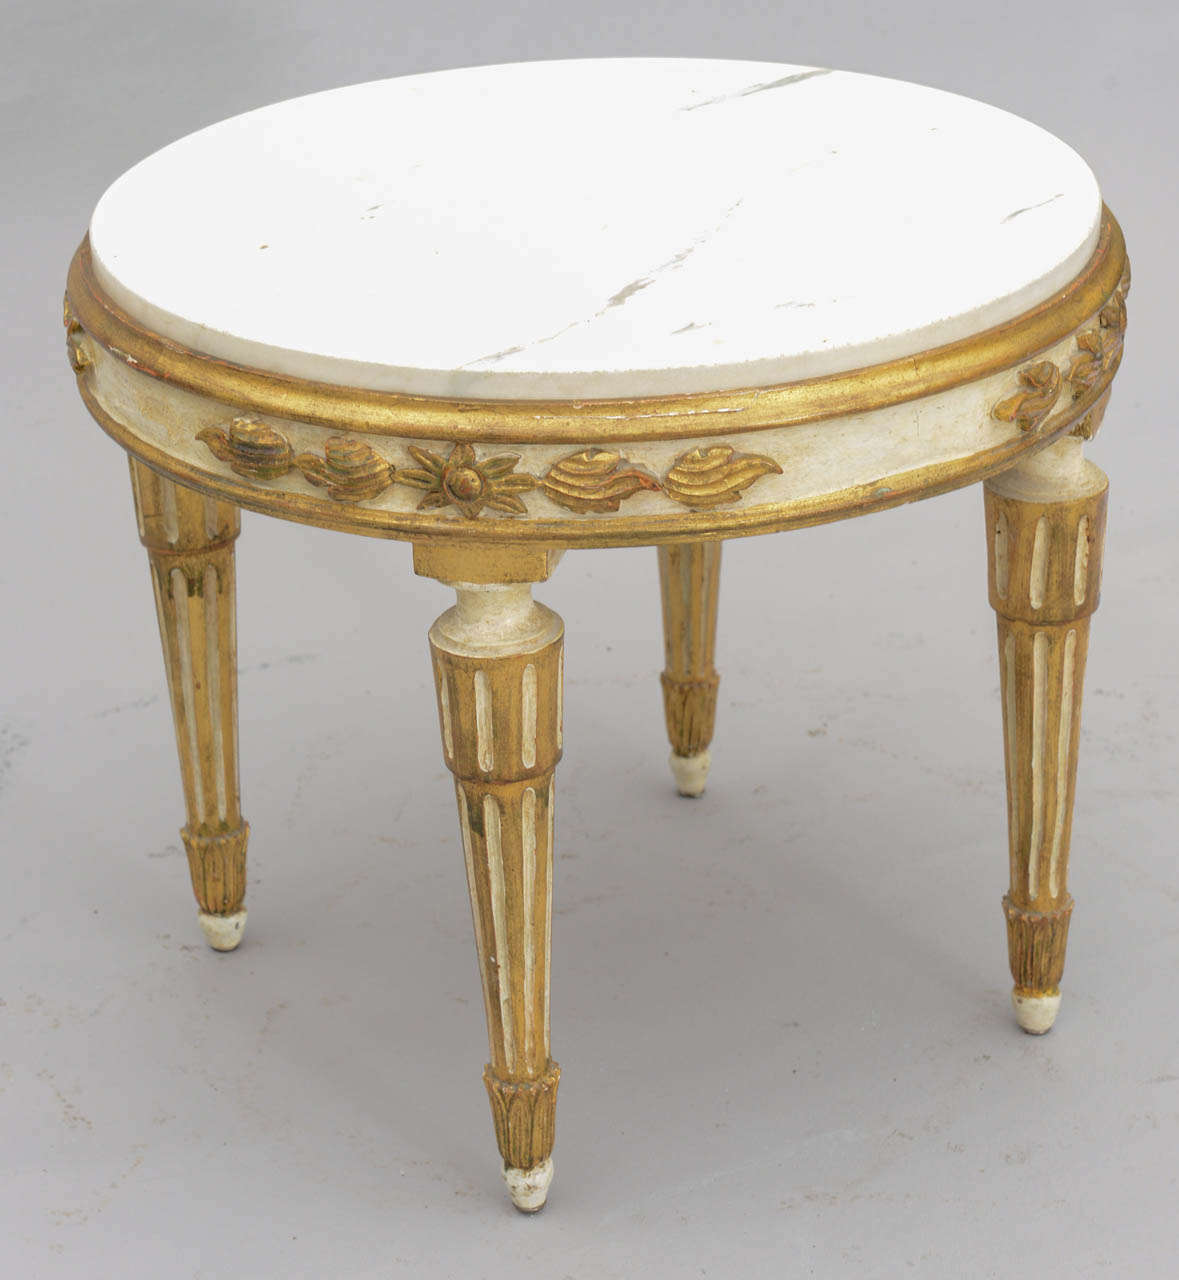 louis xvi giltwood accent table with carrara marble top for dsc italian mid century modern round coffee leg extensions long skinny tall pub set patio bar target throw rugs square